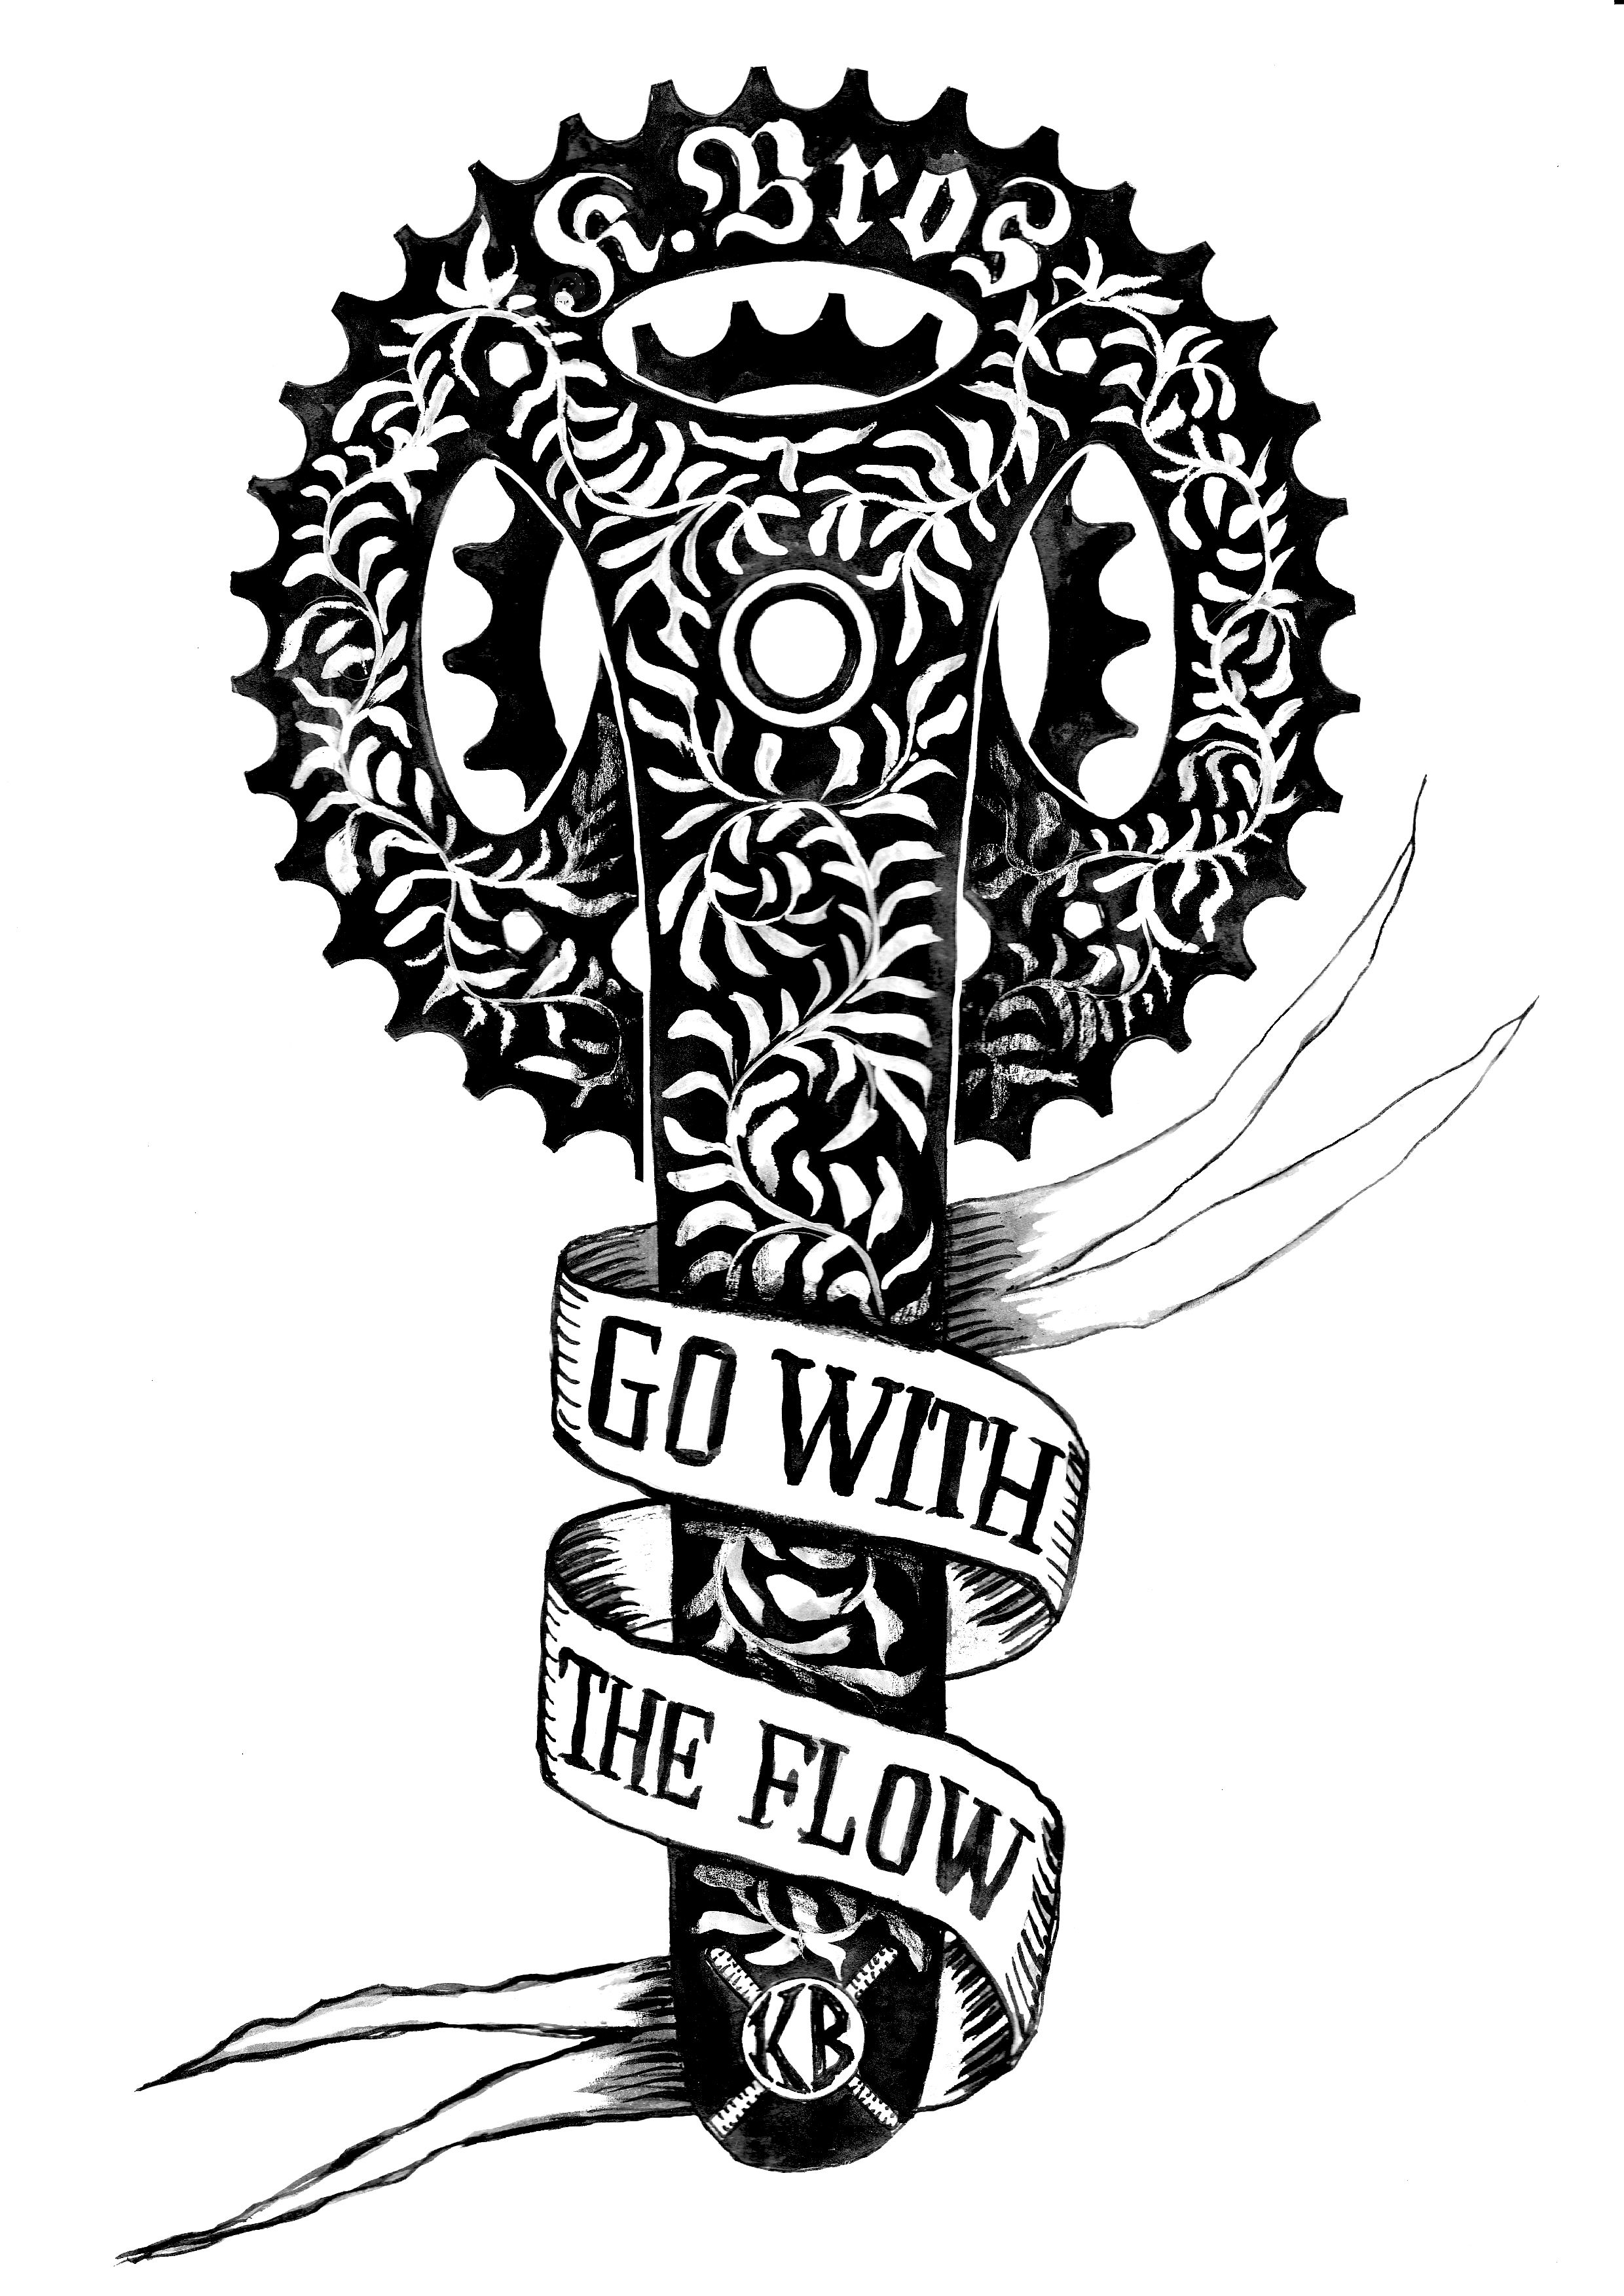 Tattoo Design We Did For The Kowalski Bros Mtb Track Builders